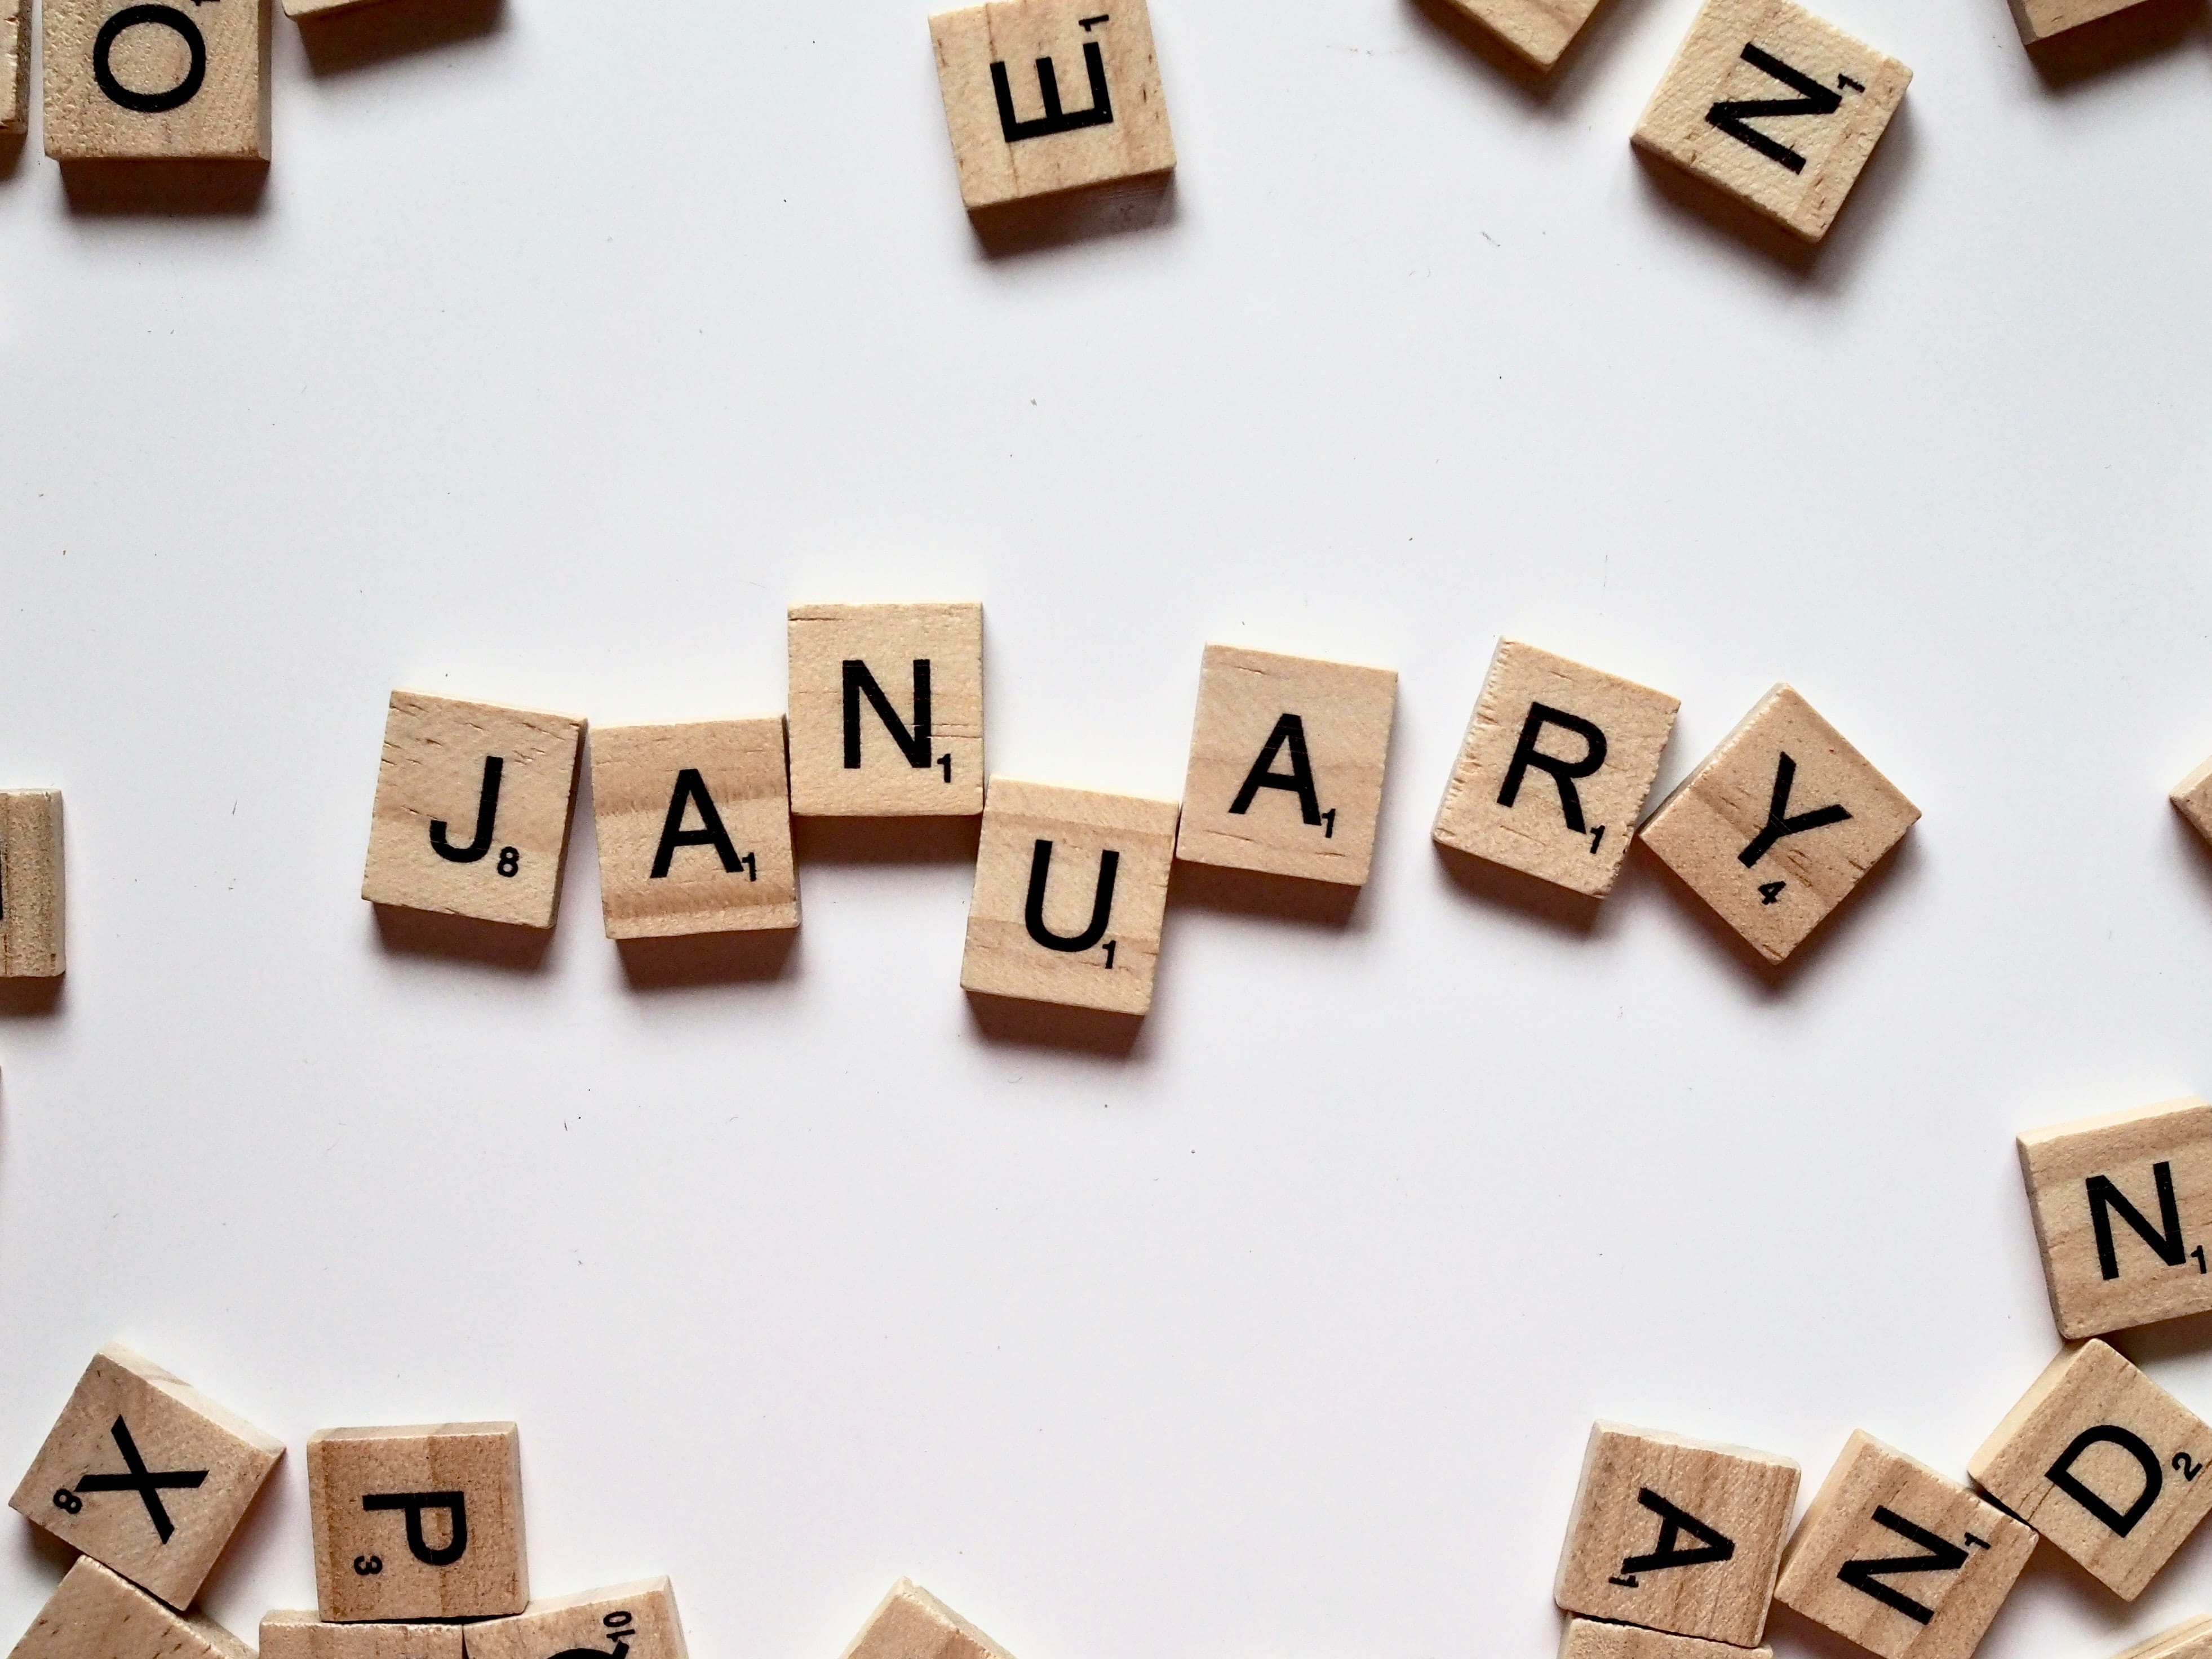 Wooden scrabble letters spell out of January against a white background.